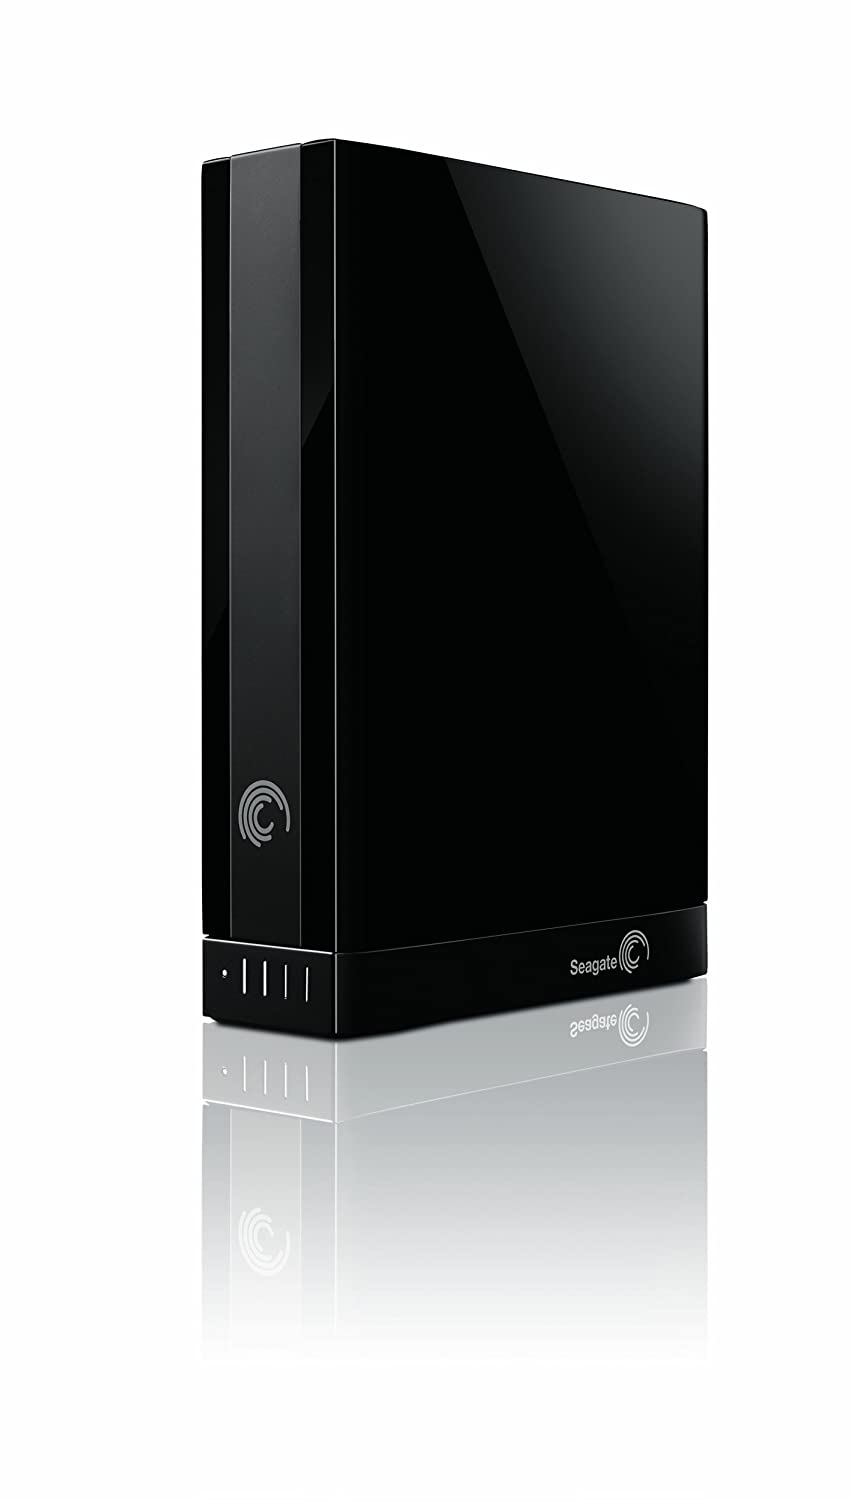 Seagate Backup Plus 4 TB USB 3.0 Desktop External Hard Drive $149.99